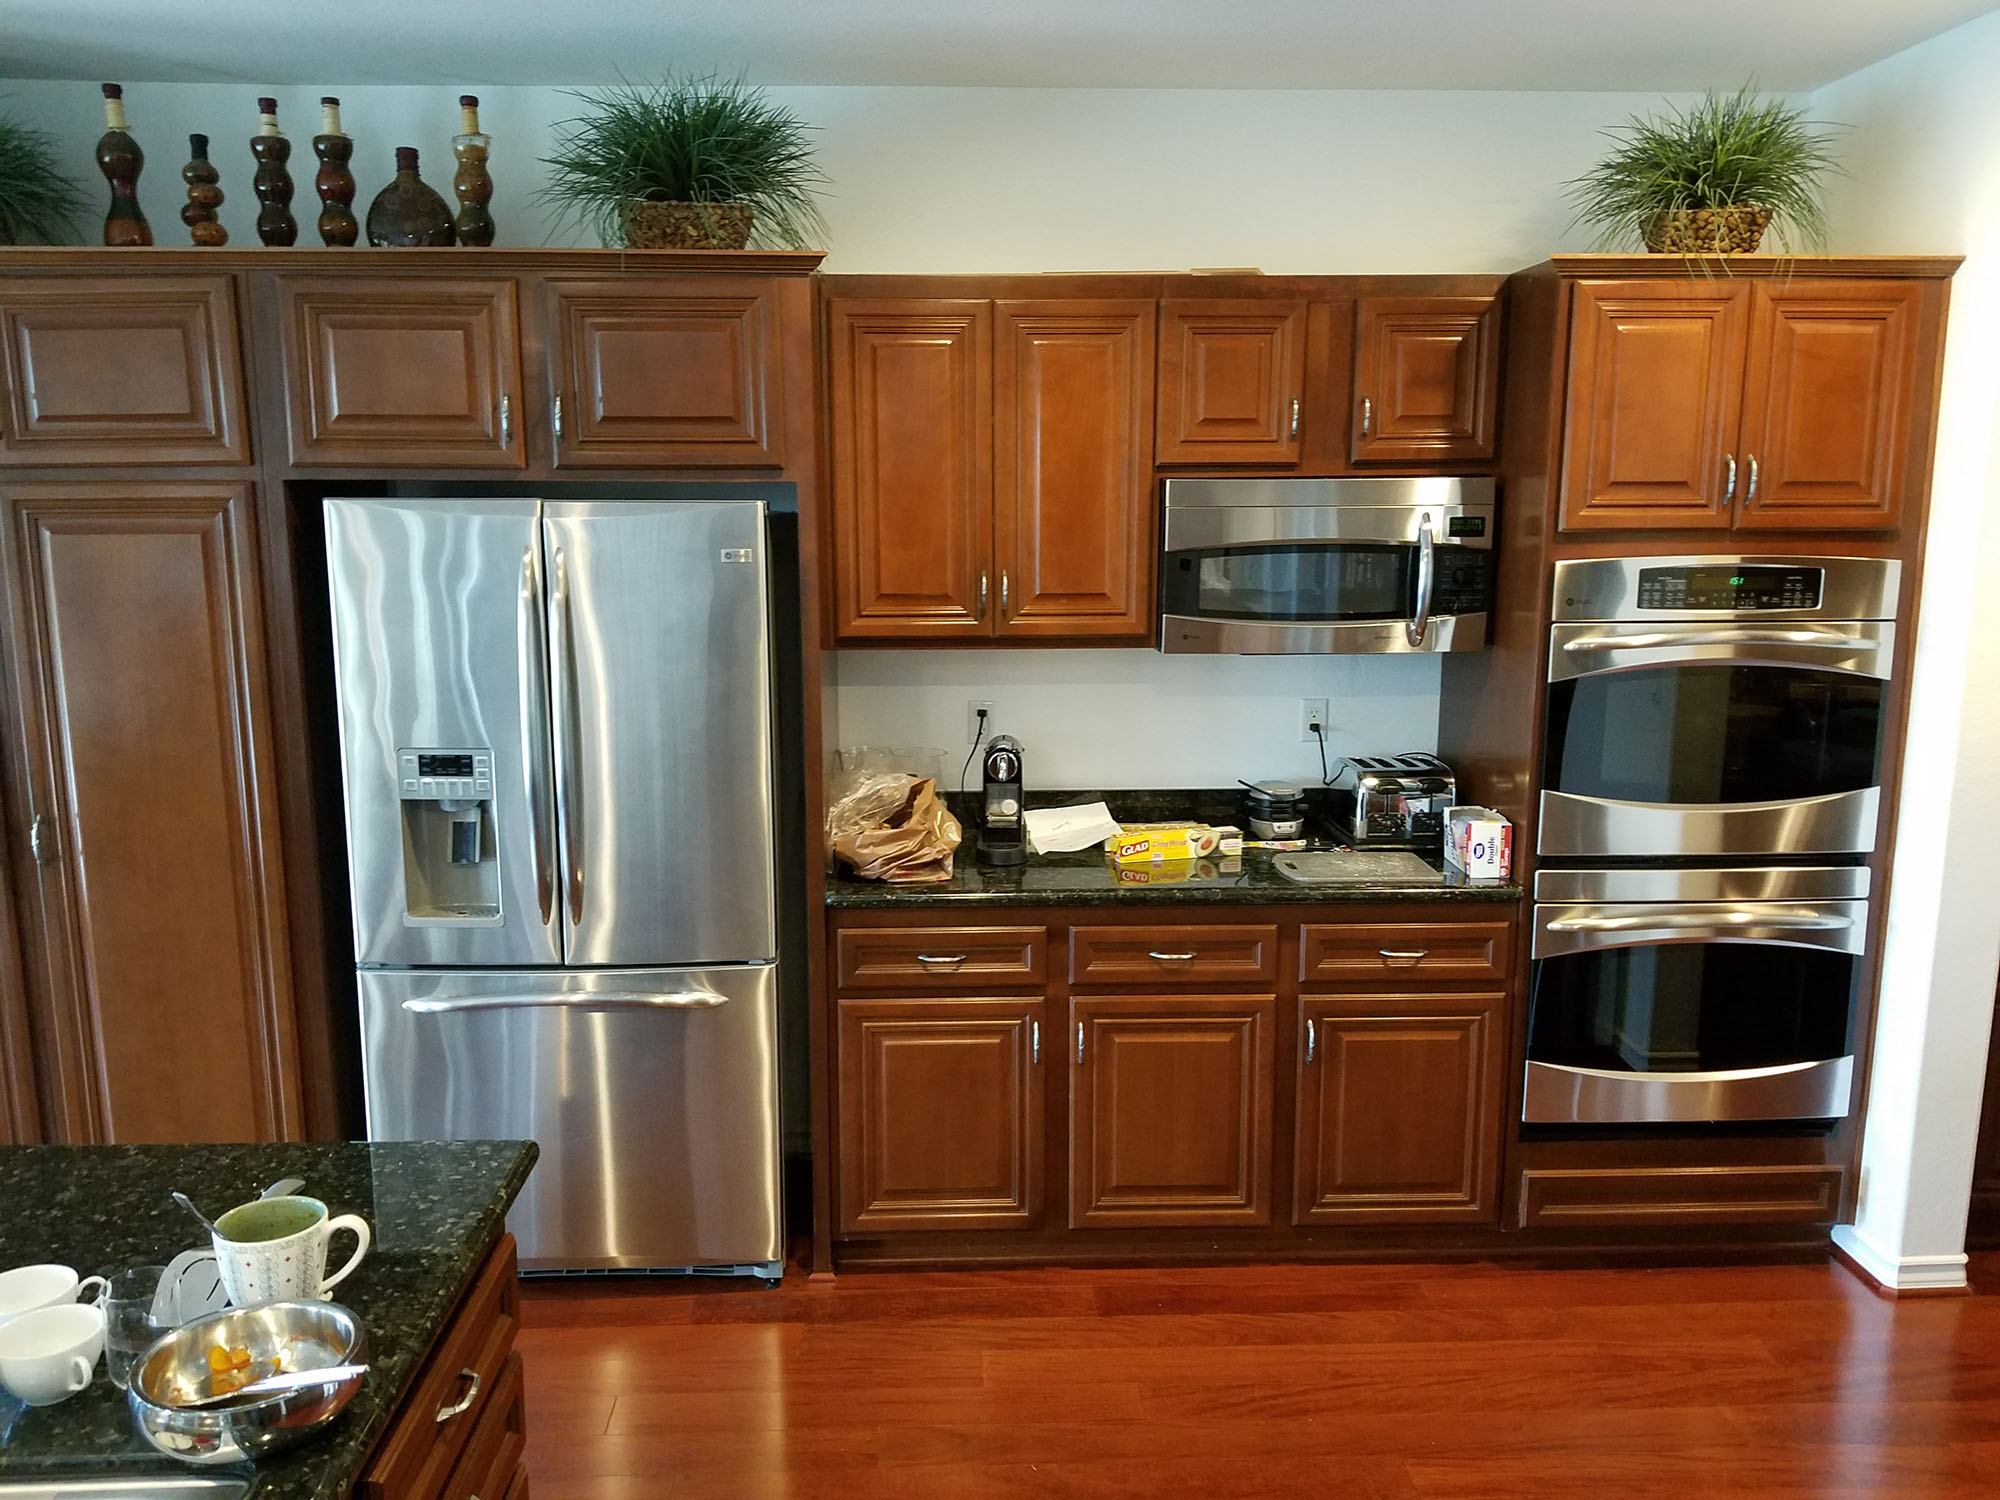 kitchen remodel stevenson ranch california